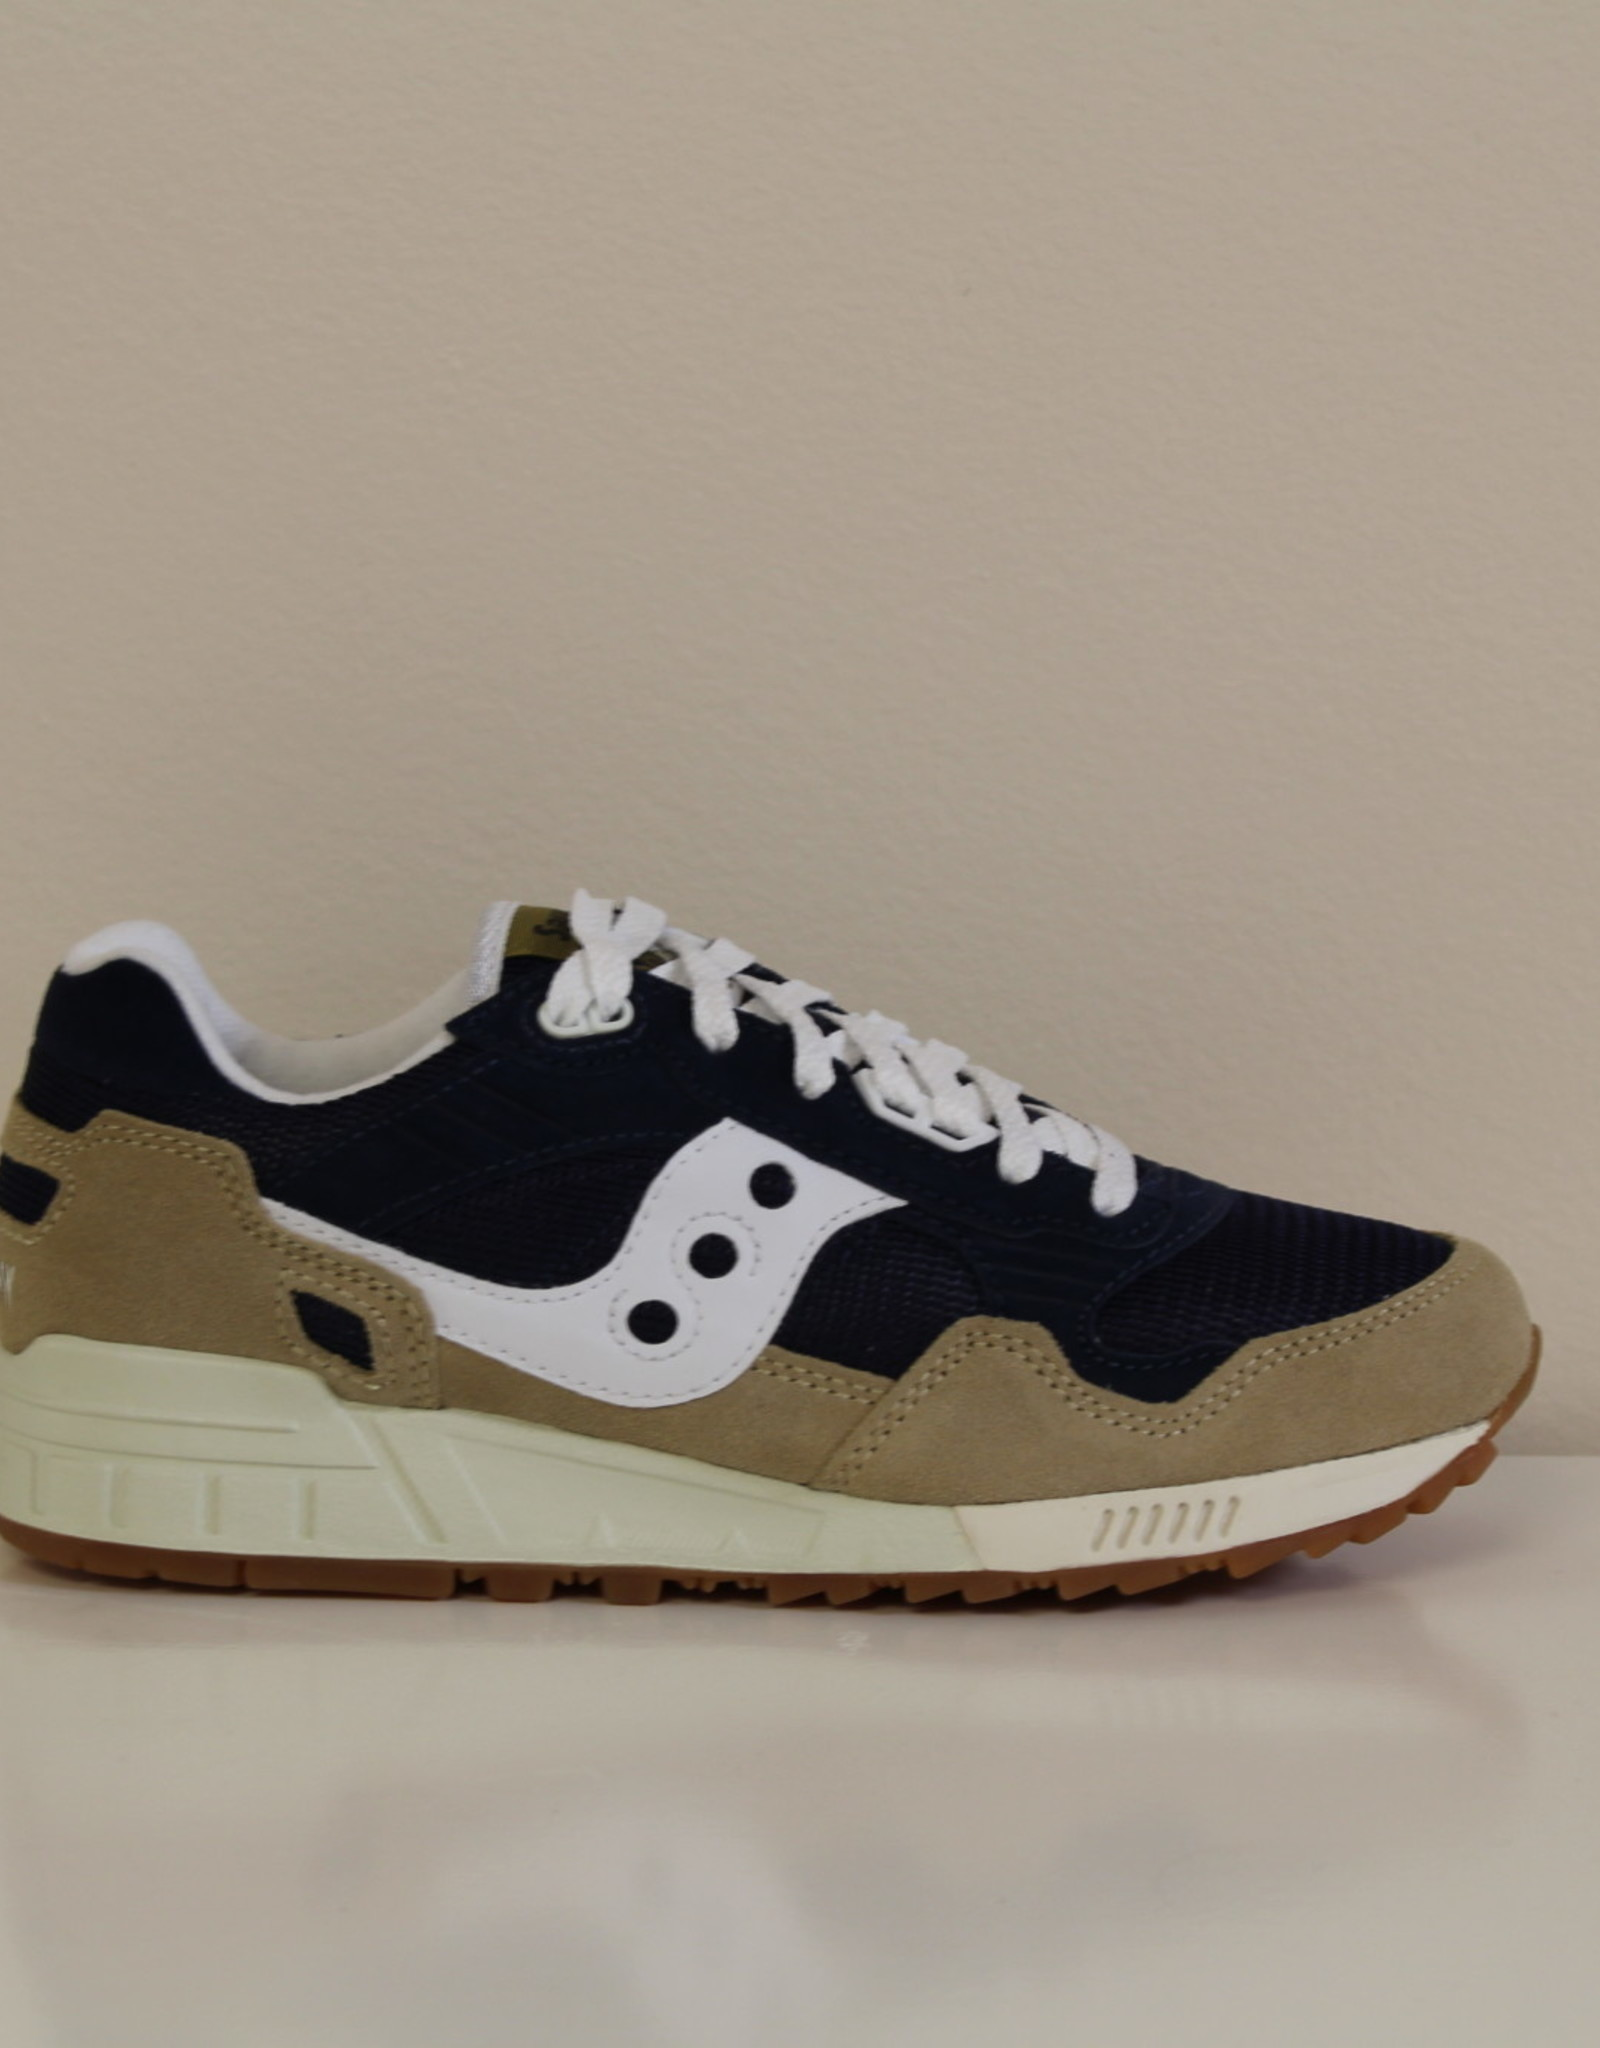 Saucony S704-04-20 shadow 5000 tan/navy/white